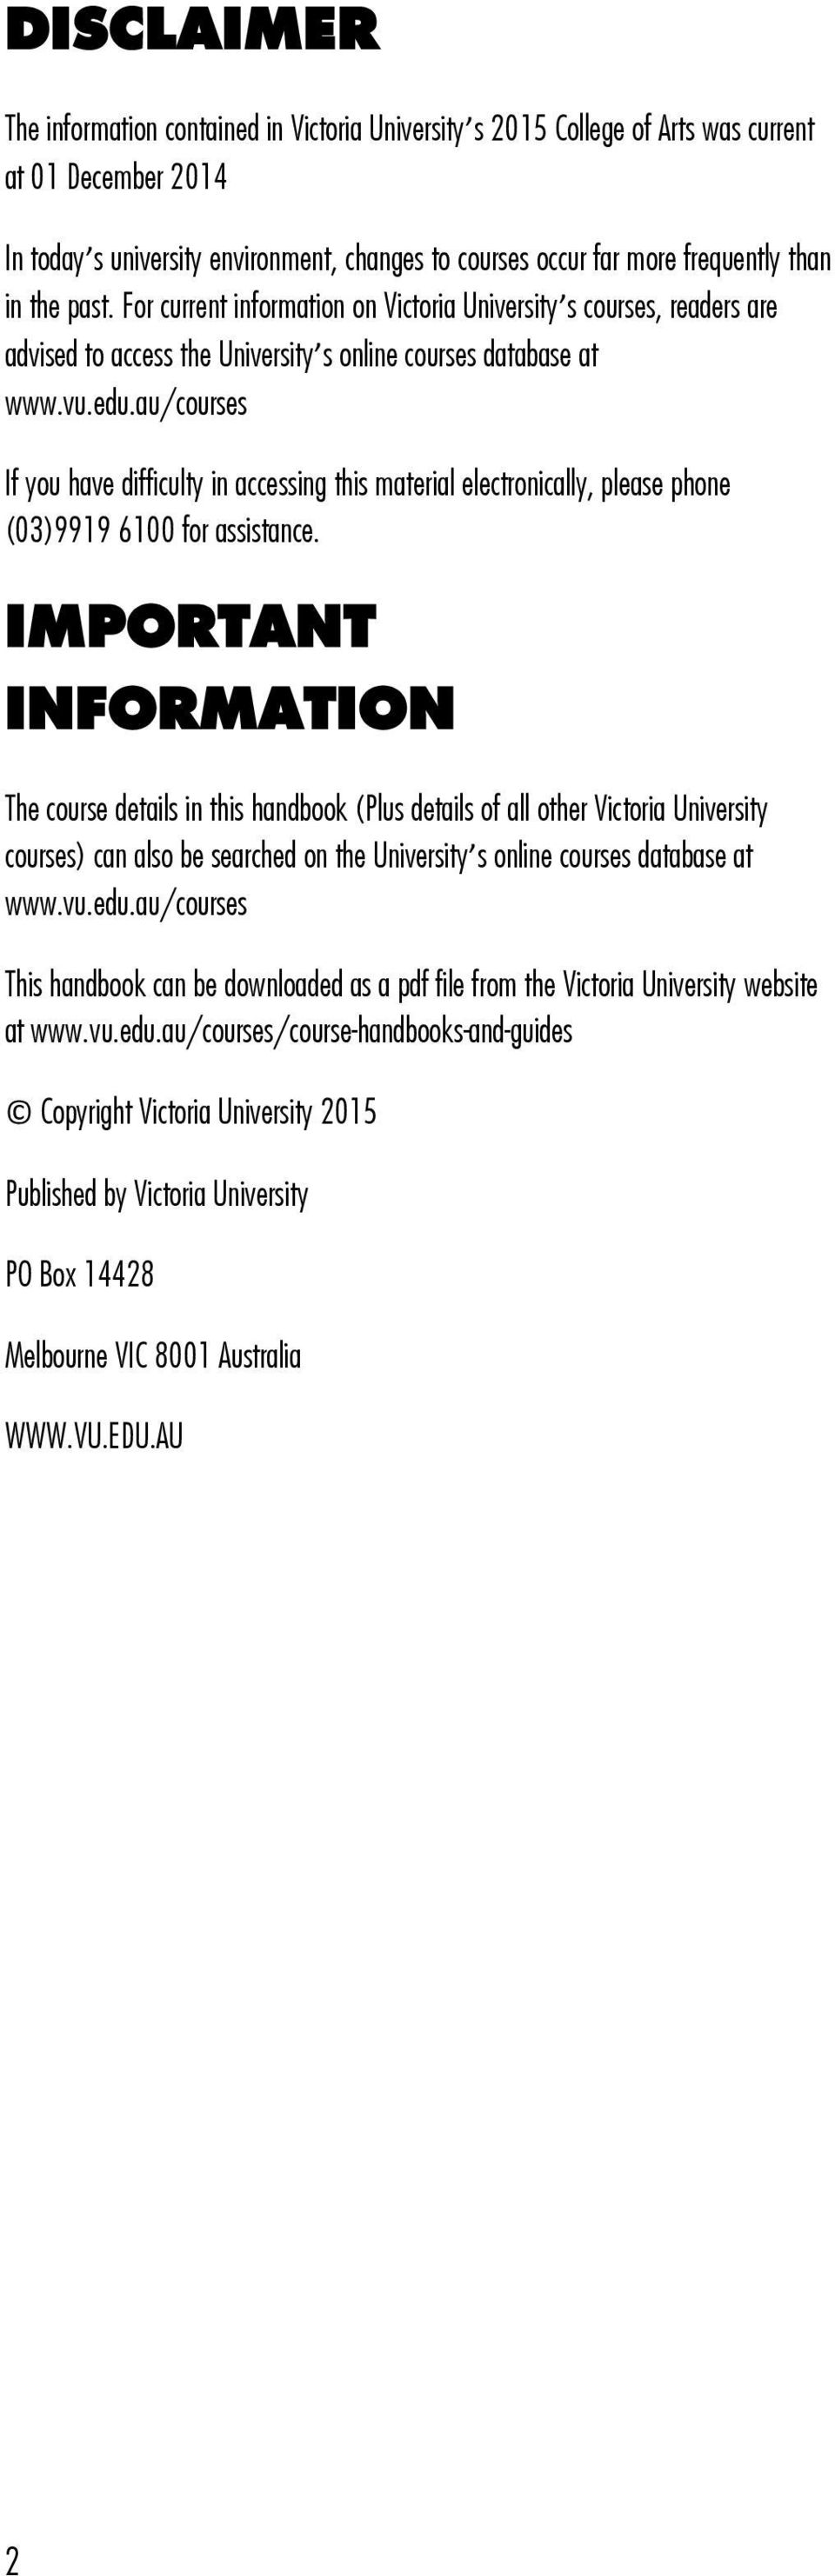 au/courses If you have difficulty in accessing this material electronically, please phone (03)9919 6100 for assistance.